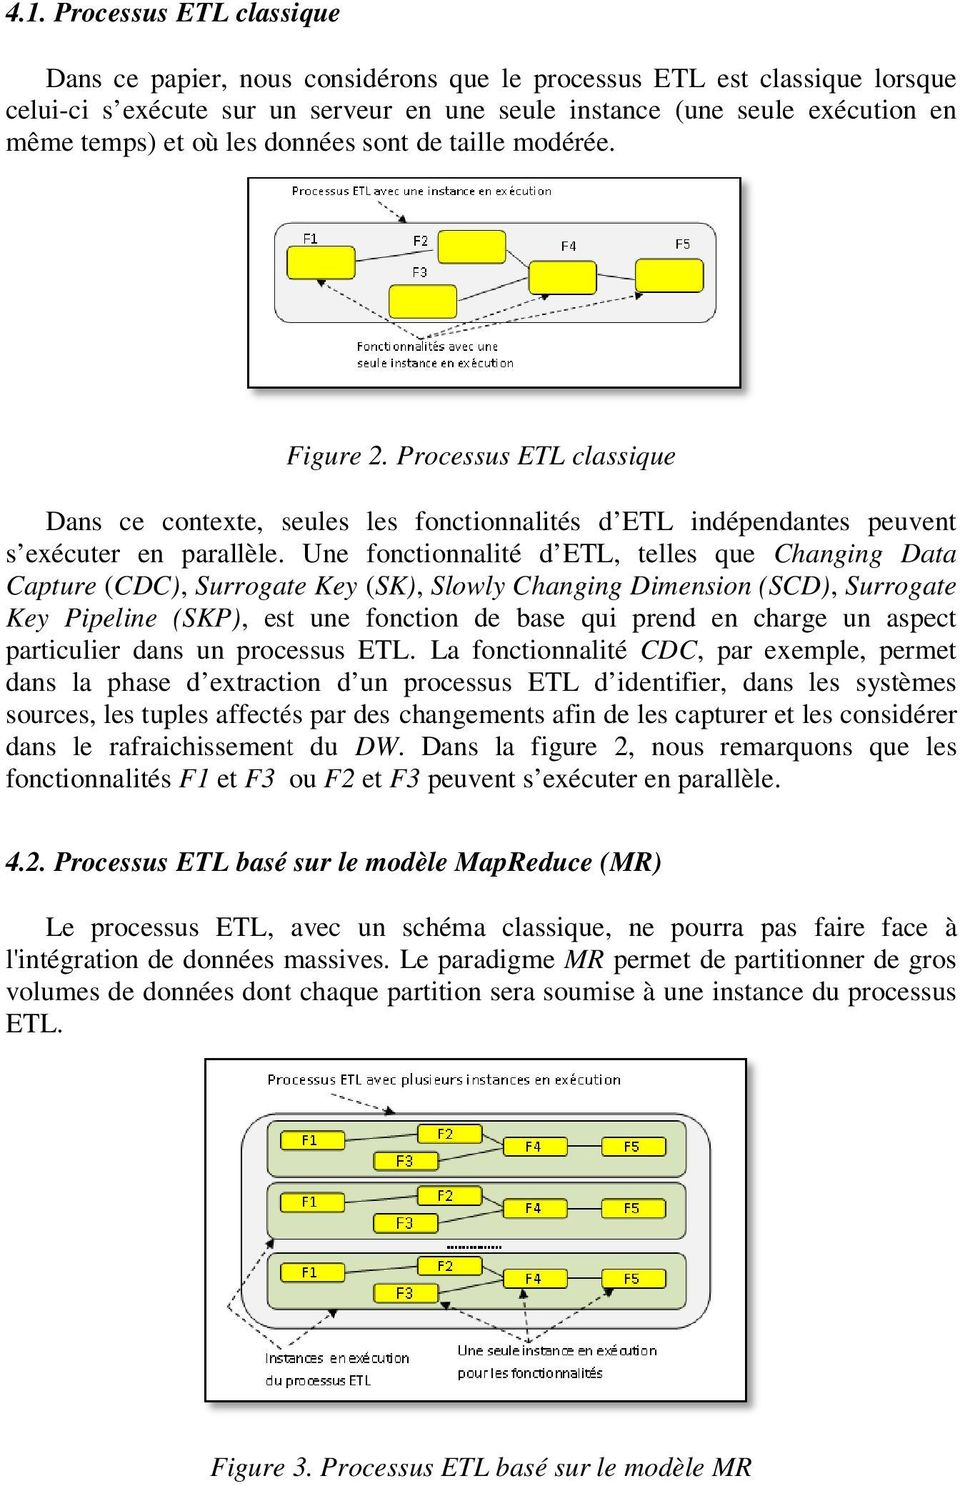 Une fonctionnalité d ETL, telles que Changing Data Capture (CDC), Surrogate Key (SK), Slowly Changing Dimension (SCD), Surrogate Key Pipeline (SKP),, est une fonction de base qui prend en charge un